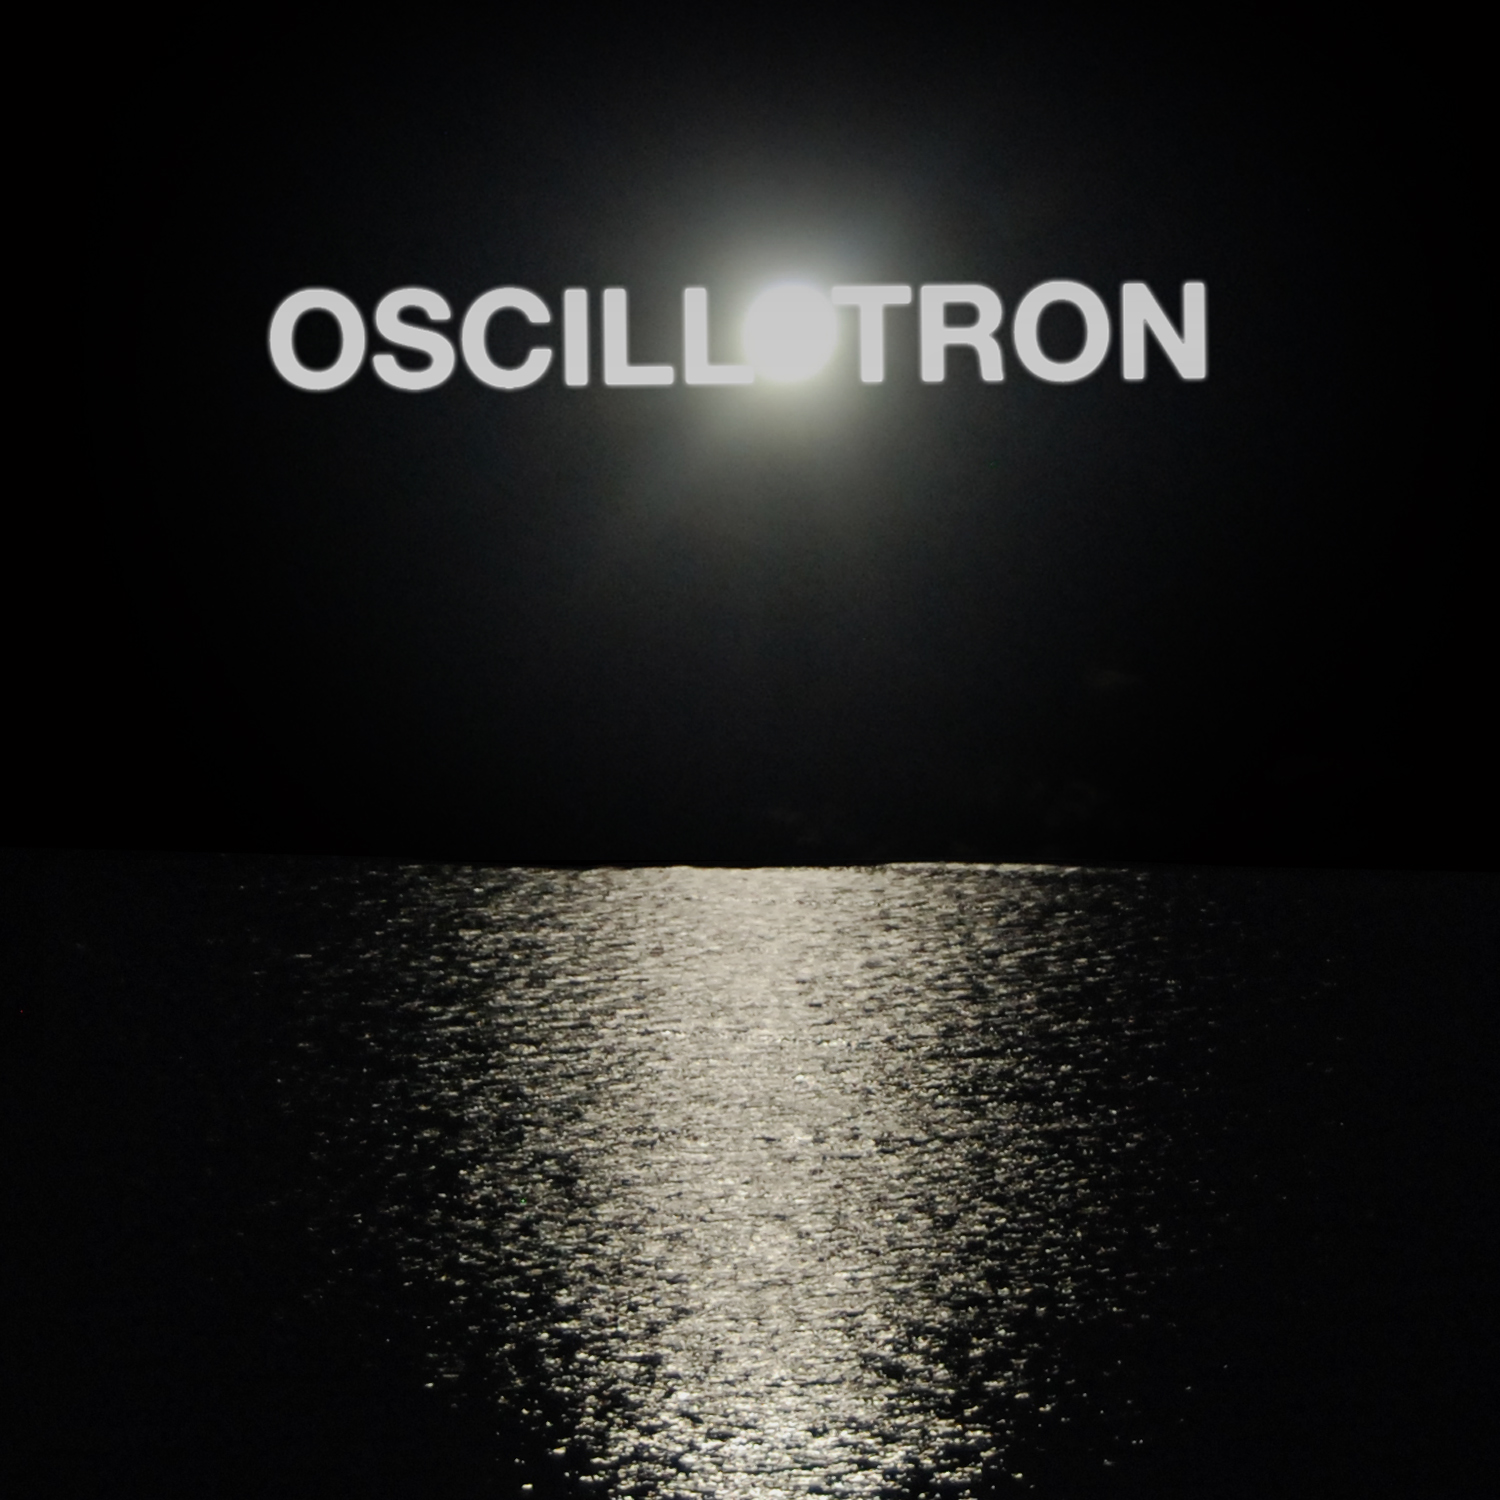 Click for more from Oscillotron